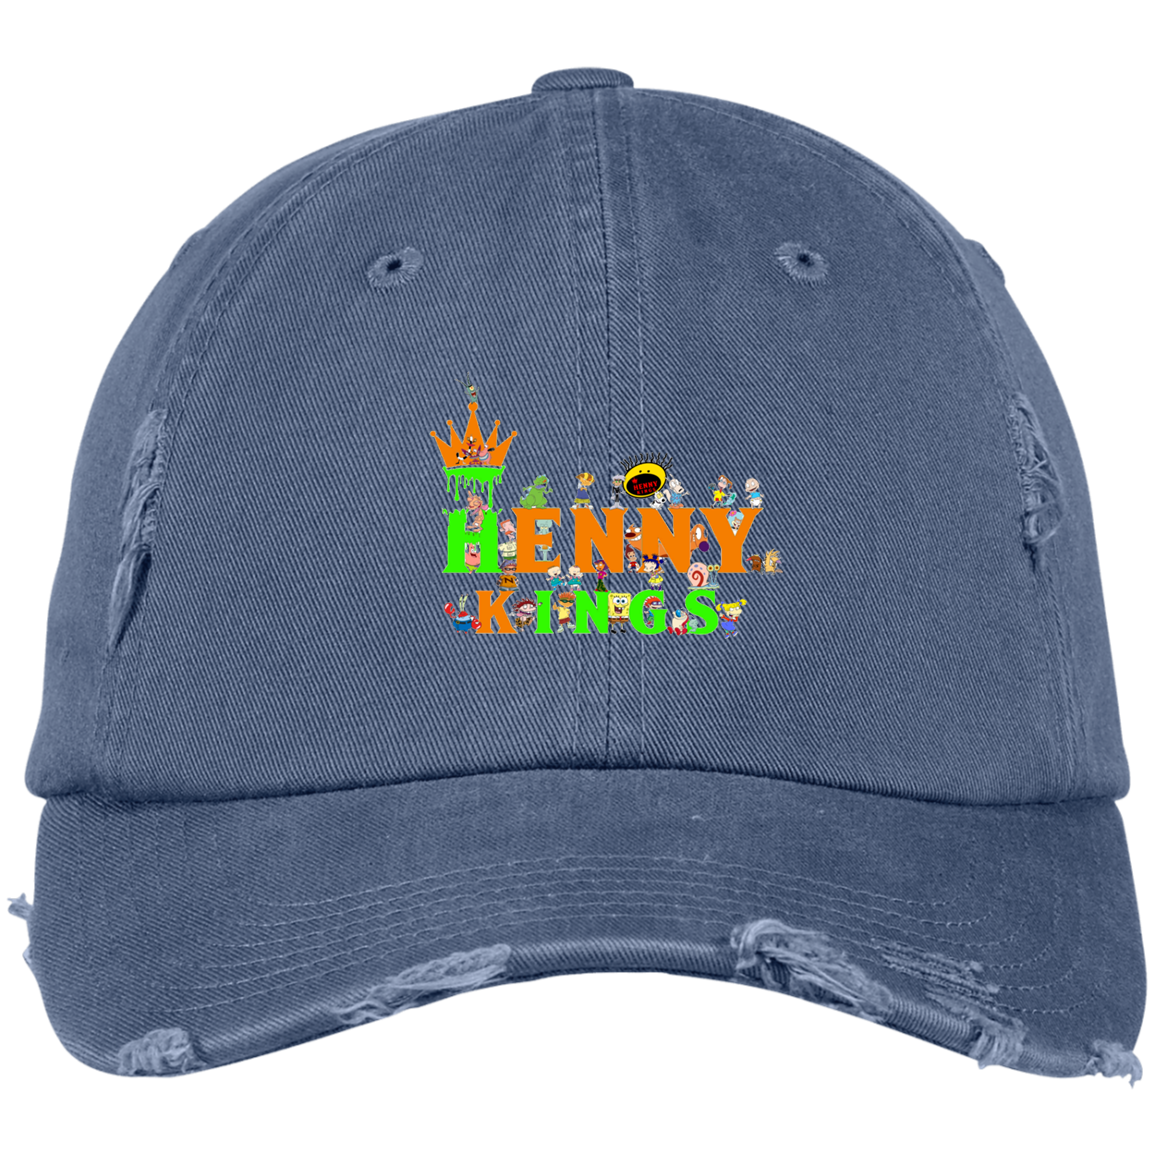 90's Back Distressed Dad Cap - Henny Kings